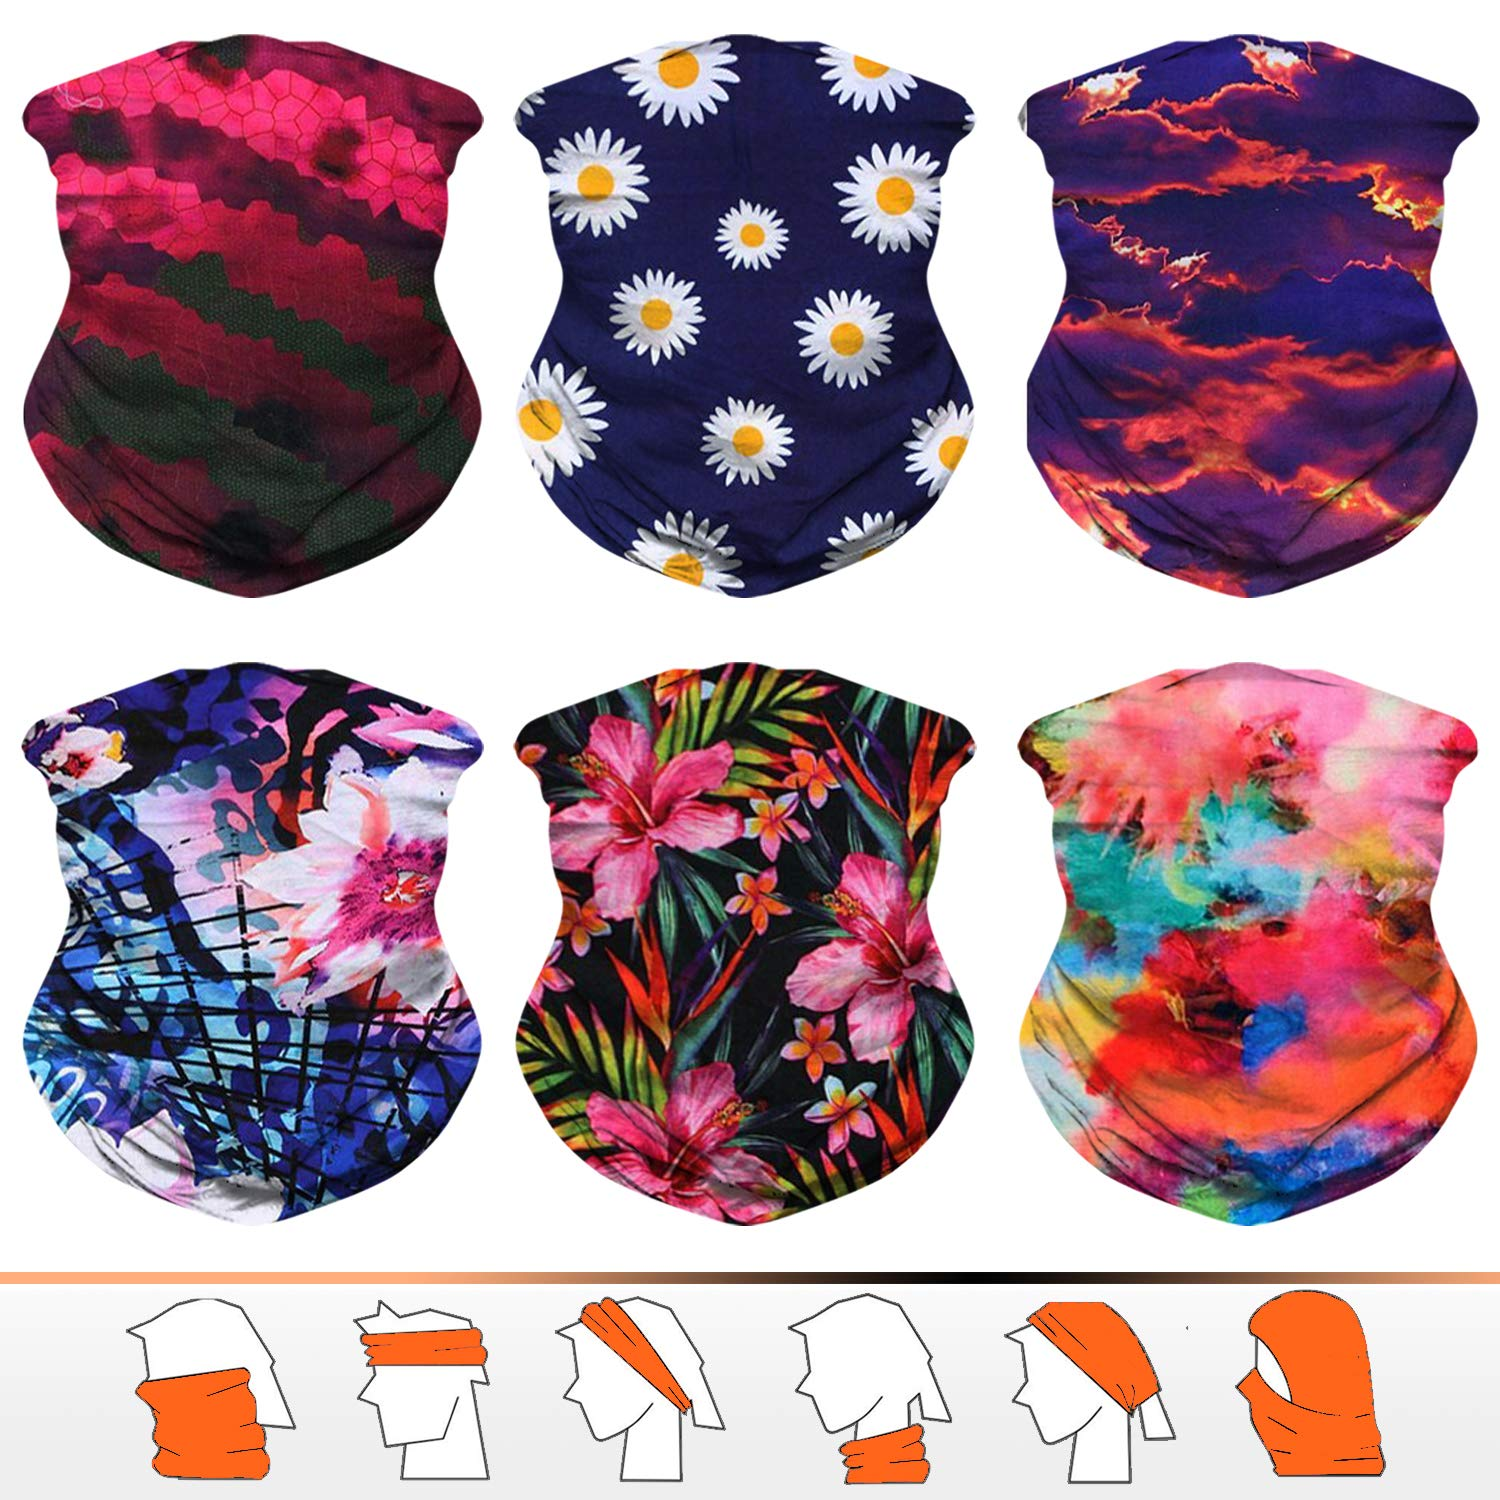 Neck Gaiters Bandana Face Mask Pack of 2 Headwraps Headscarf Outdoor Multifunctional Seamless Headwear